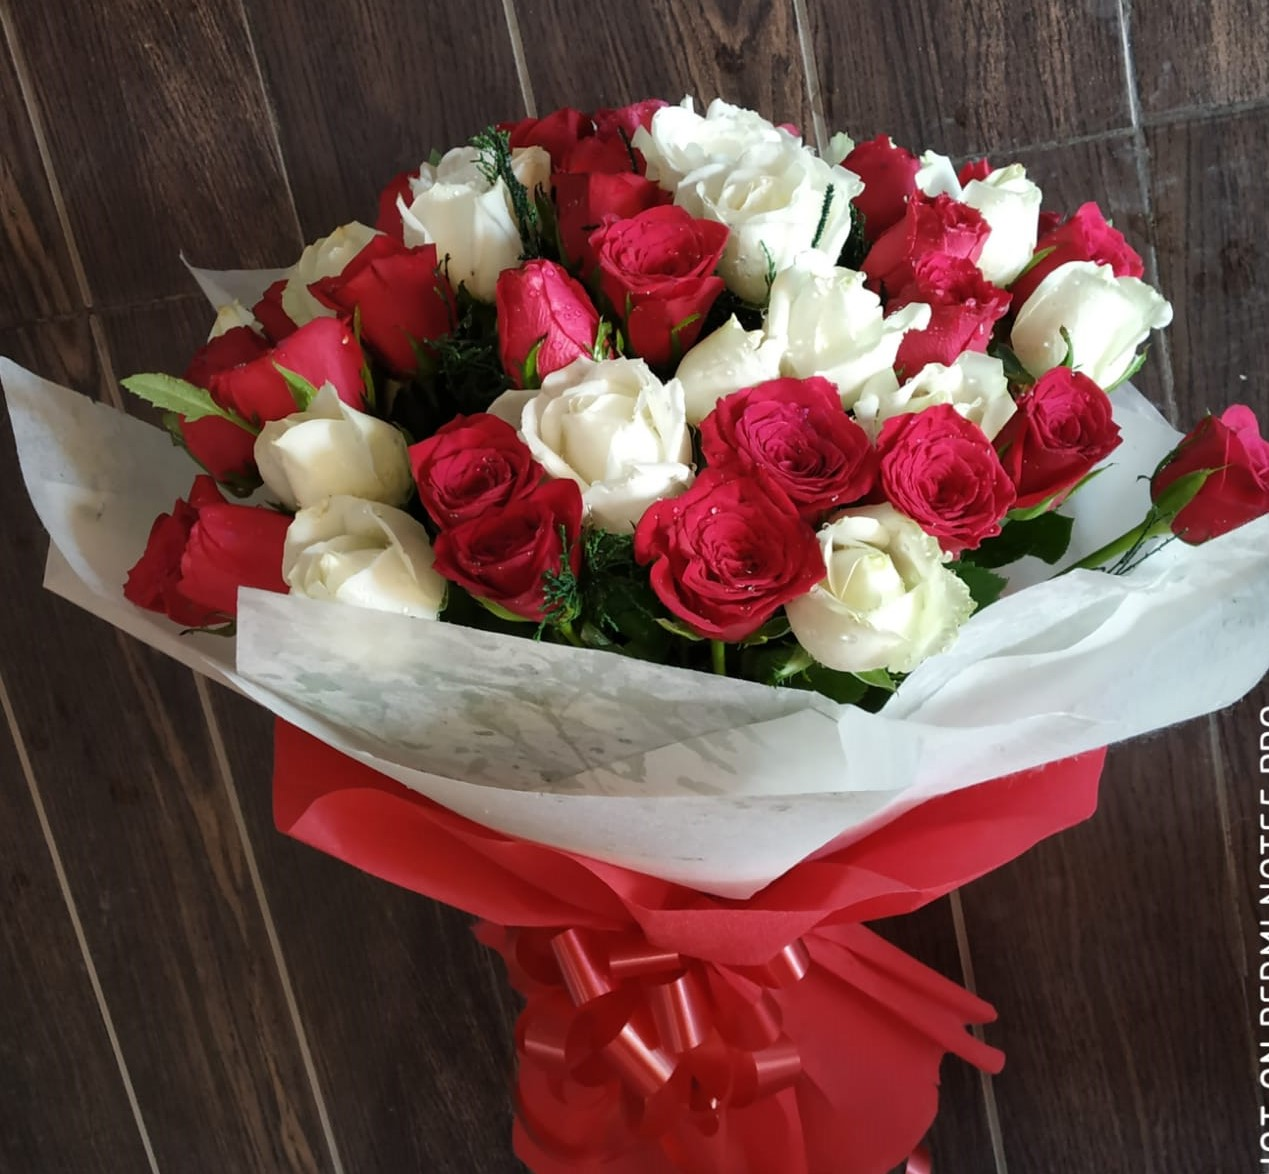 send flower Alaknanda DelhiRed & White Roses in Duble Layer Packing